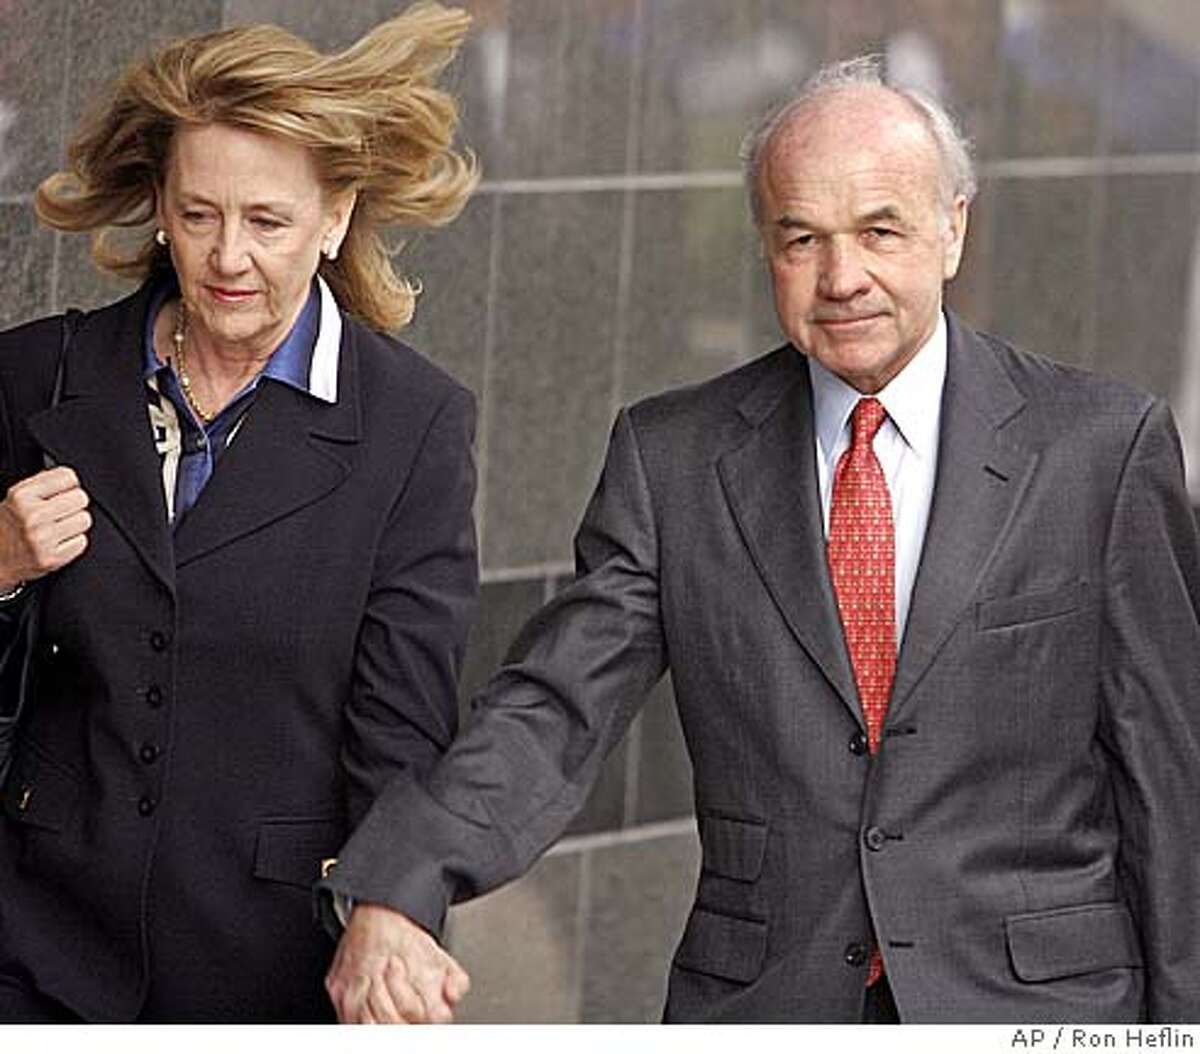 Walking hand in hand with his wife Linda, former Enron founder Ken Lay enters the federal courthouse in Houston, Monday, Jan. 30, 2006 for the first day of his trial on fraud and conspiracy. (AP Photo/Ron Heflin)